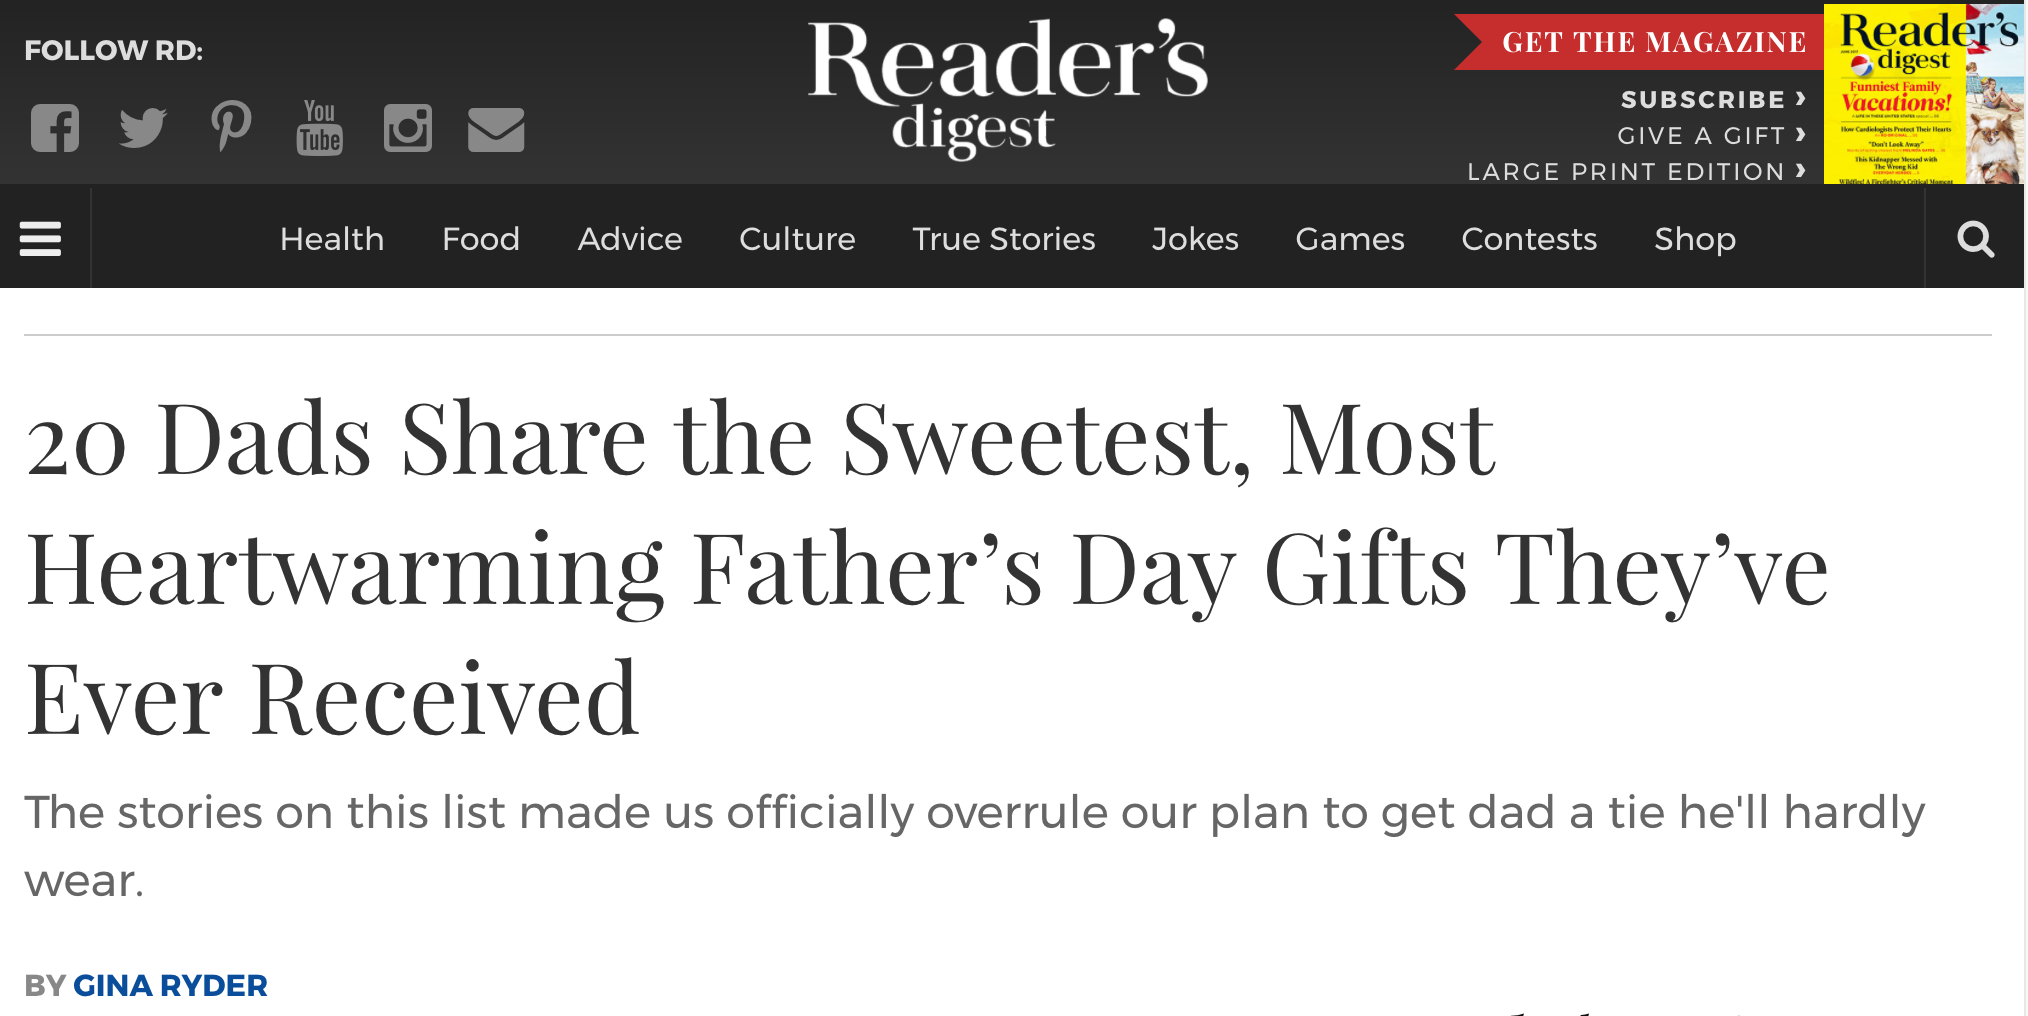 father's day readers digest